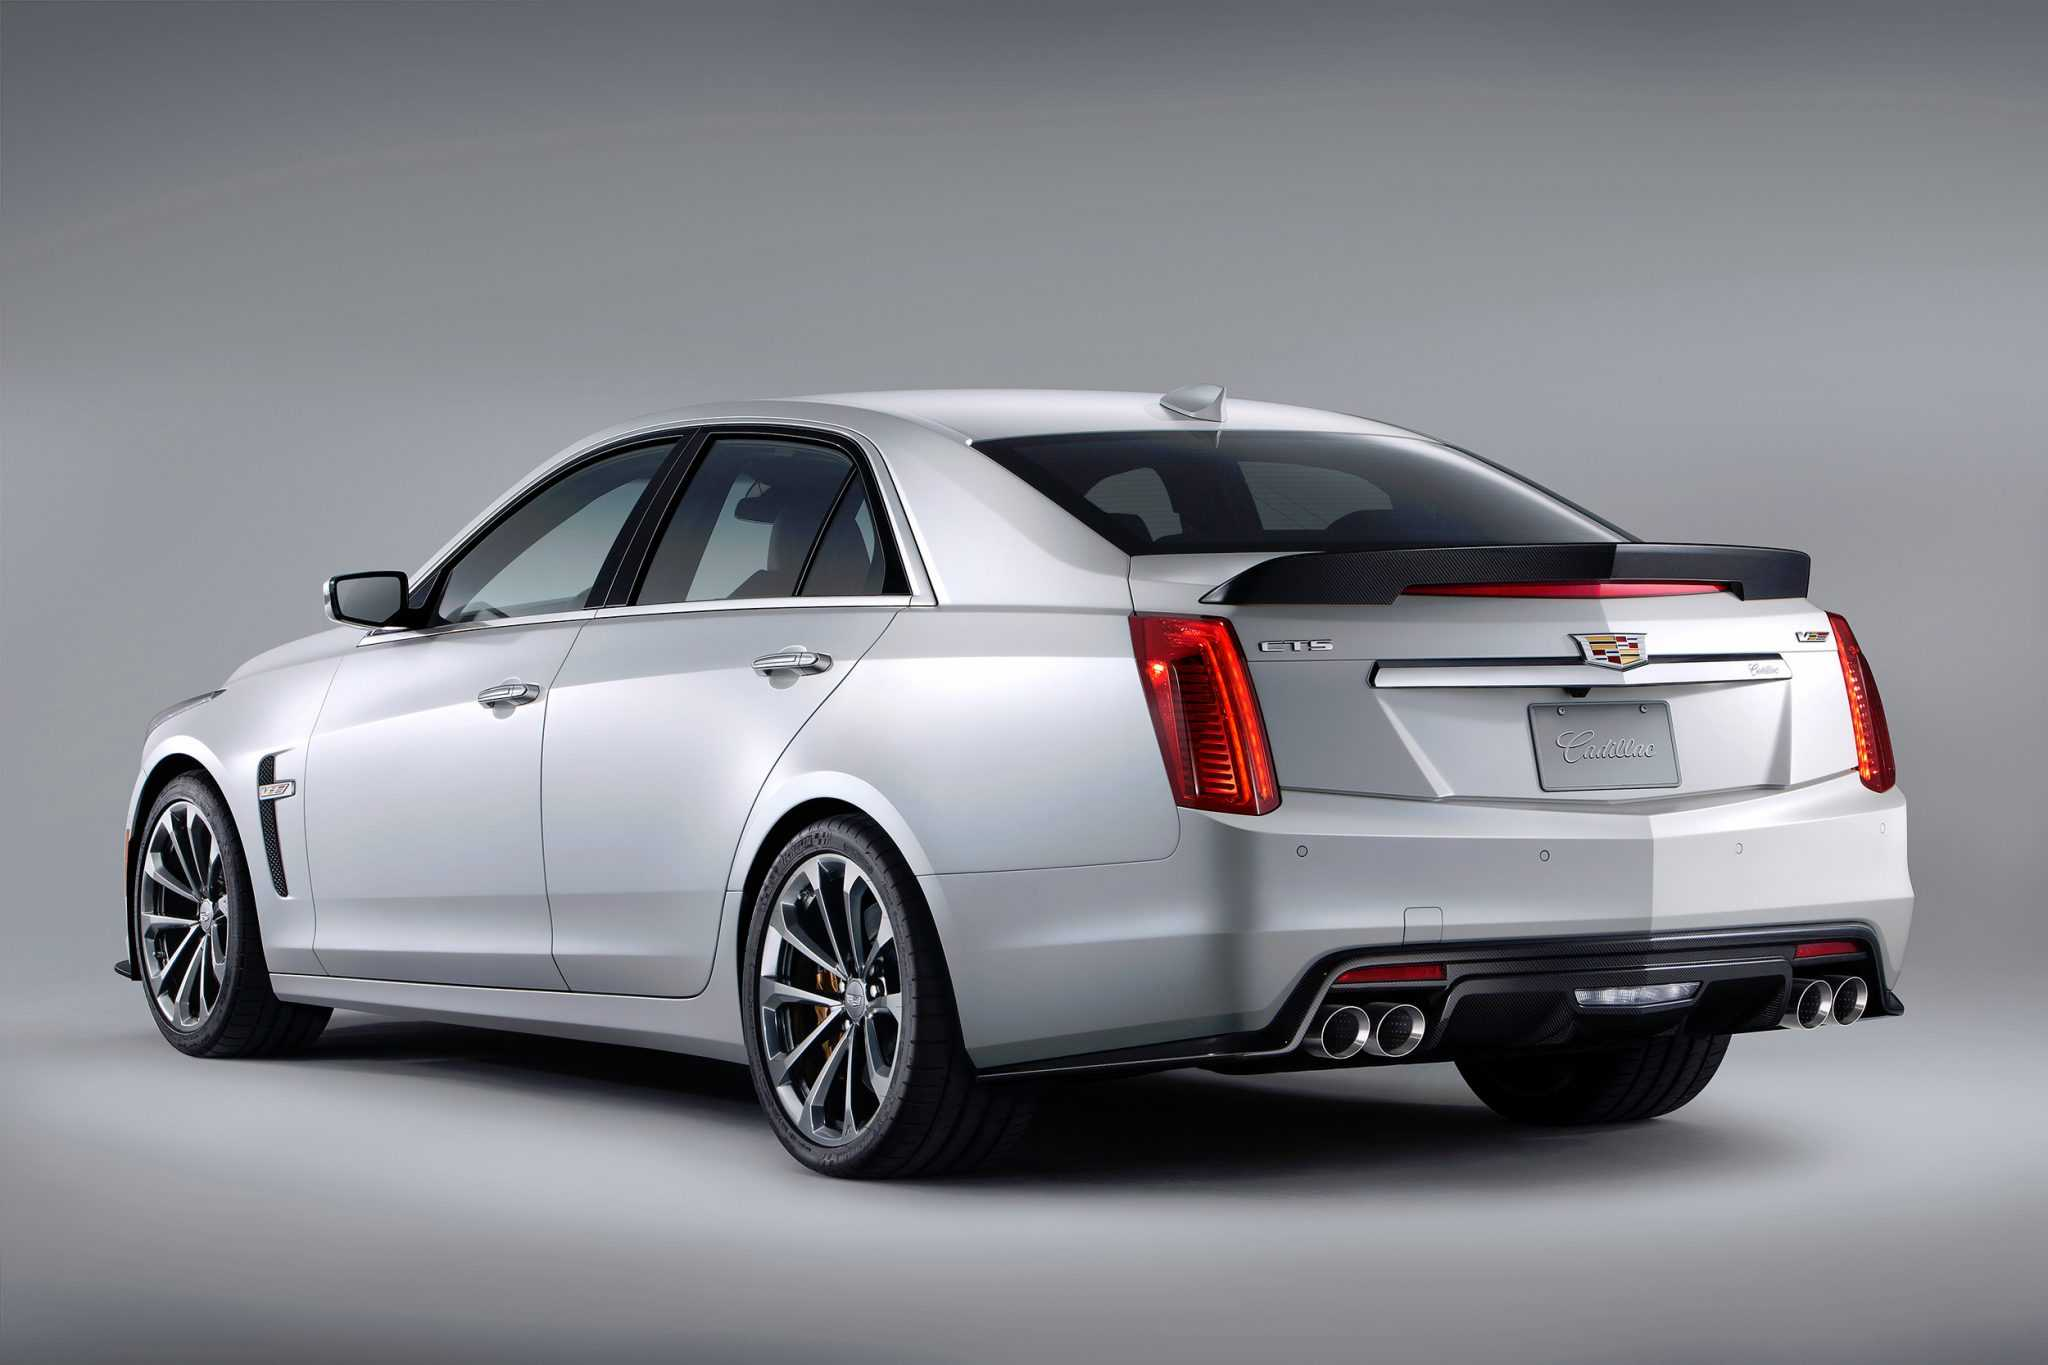 2016 Cadillac Boosts Fuel Efficiency in CTS and ATS Models with New Engine